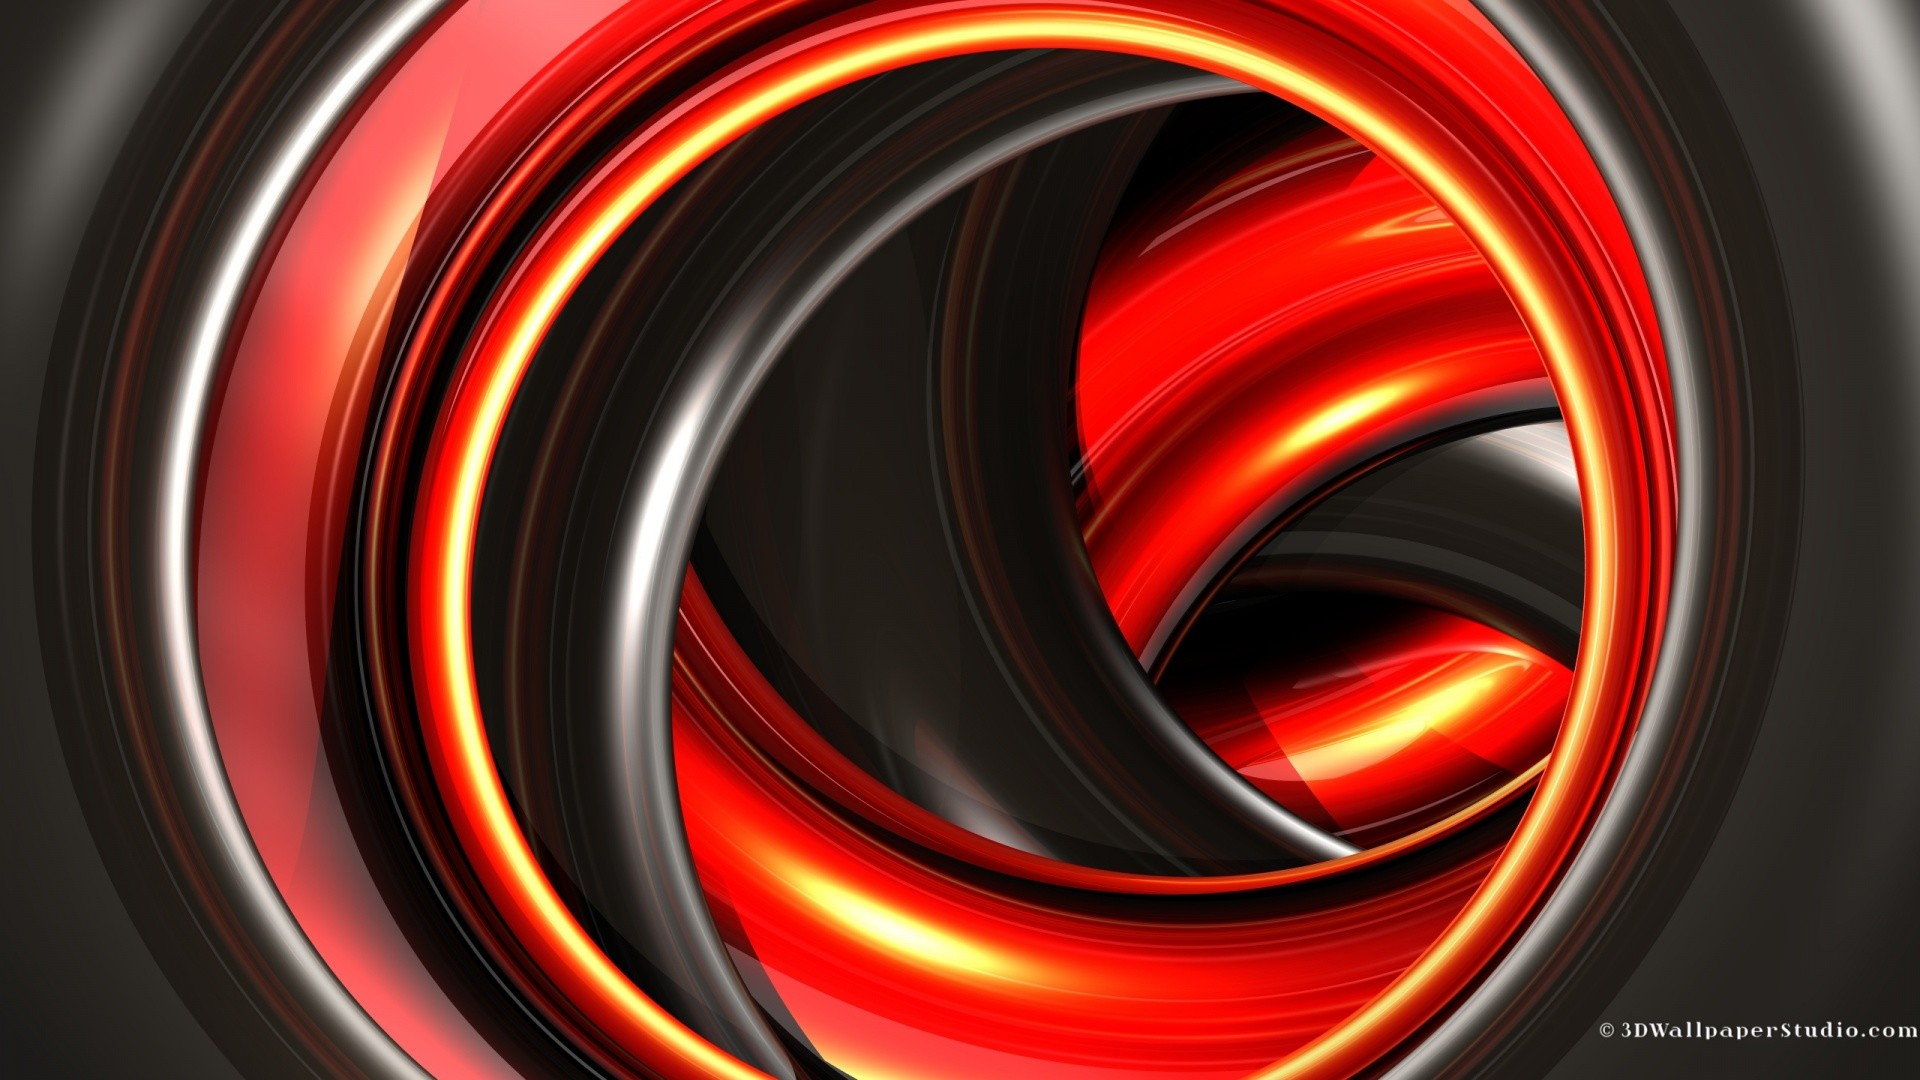 1920x1080 Black and red 3d abstract wallpaper in  screen resolution